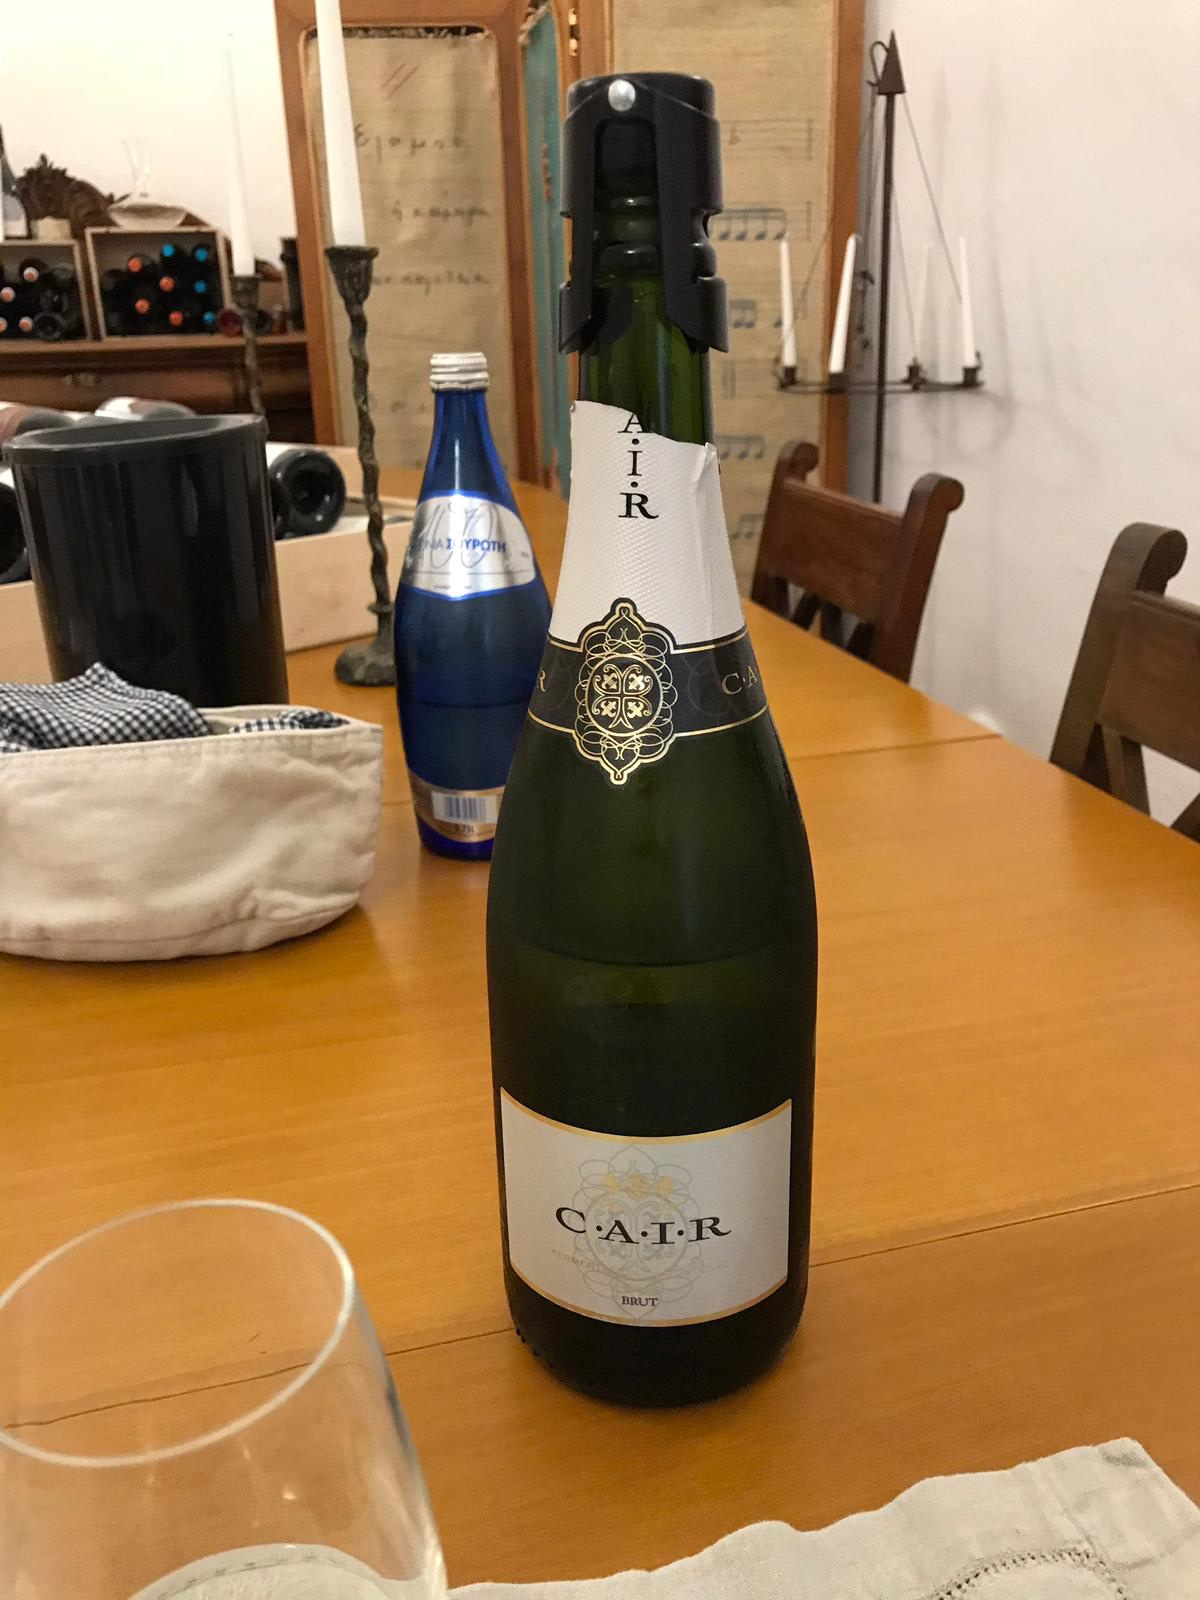 A sparkling wine from Rhodes - Cair, very drinkable